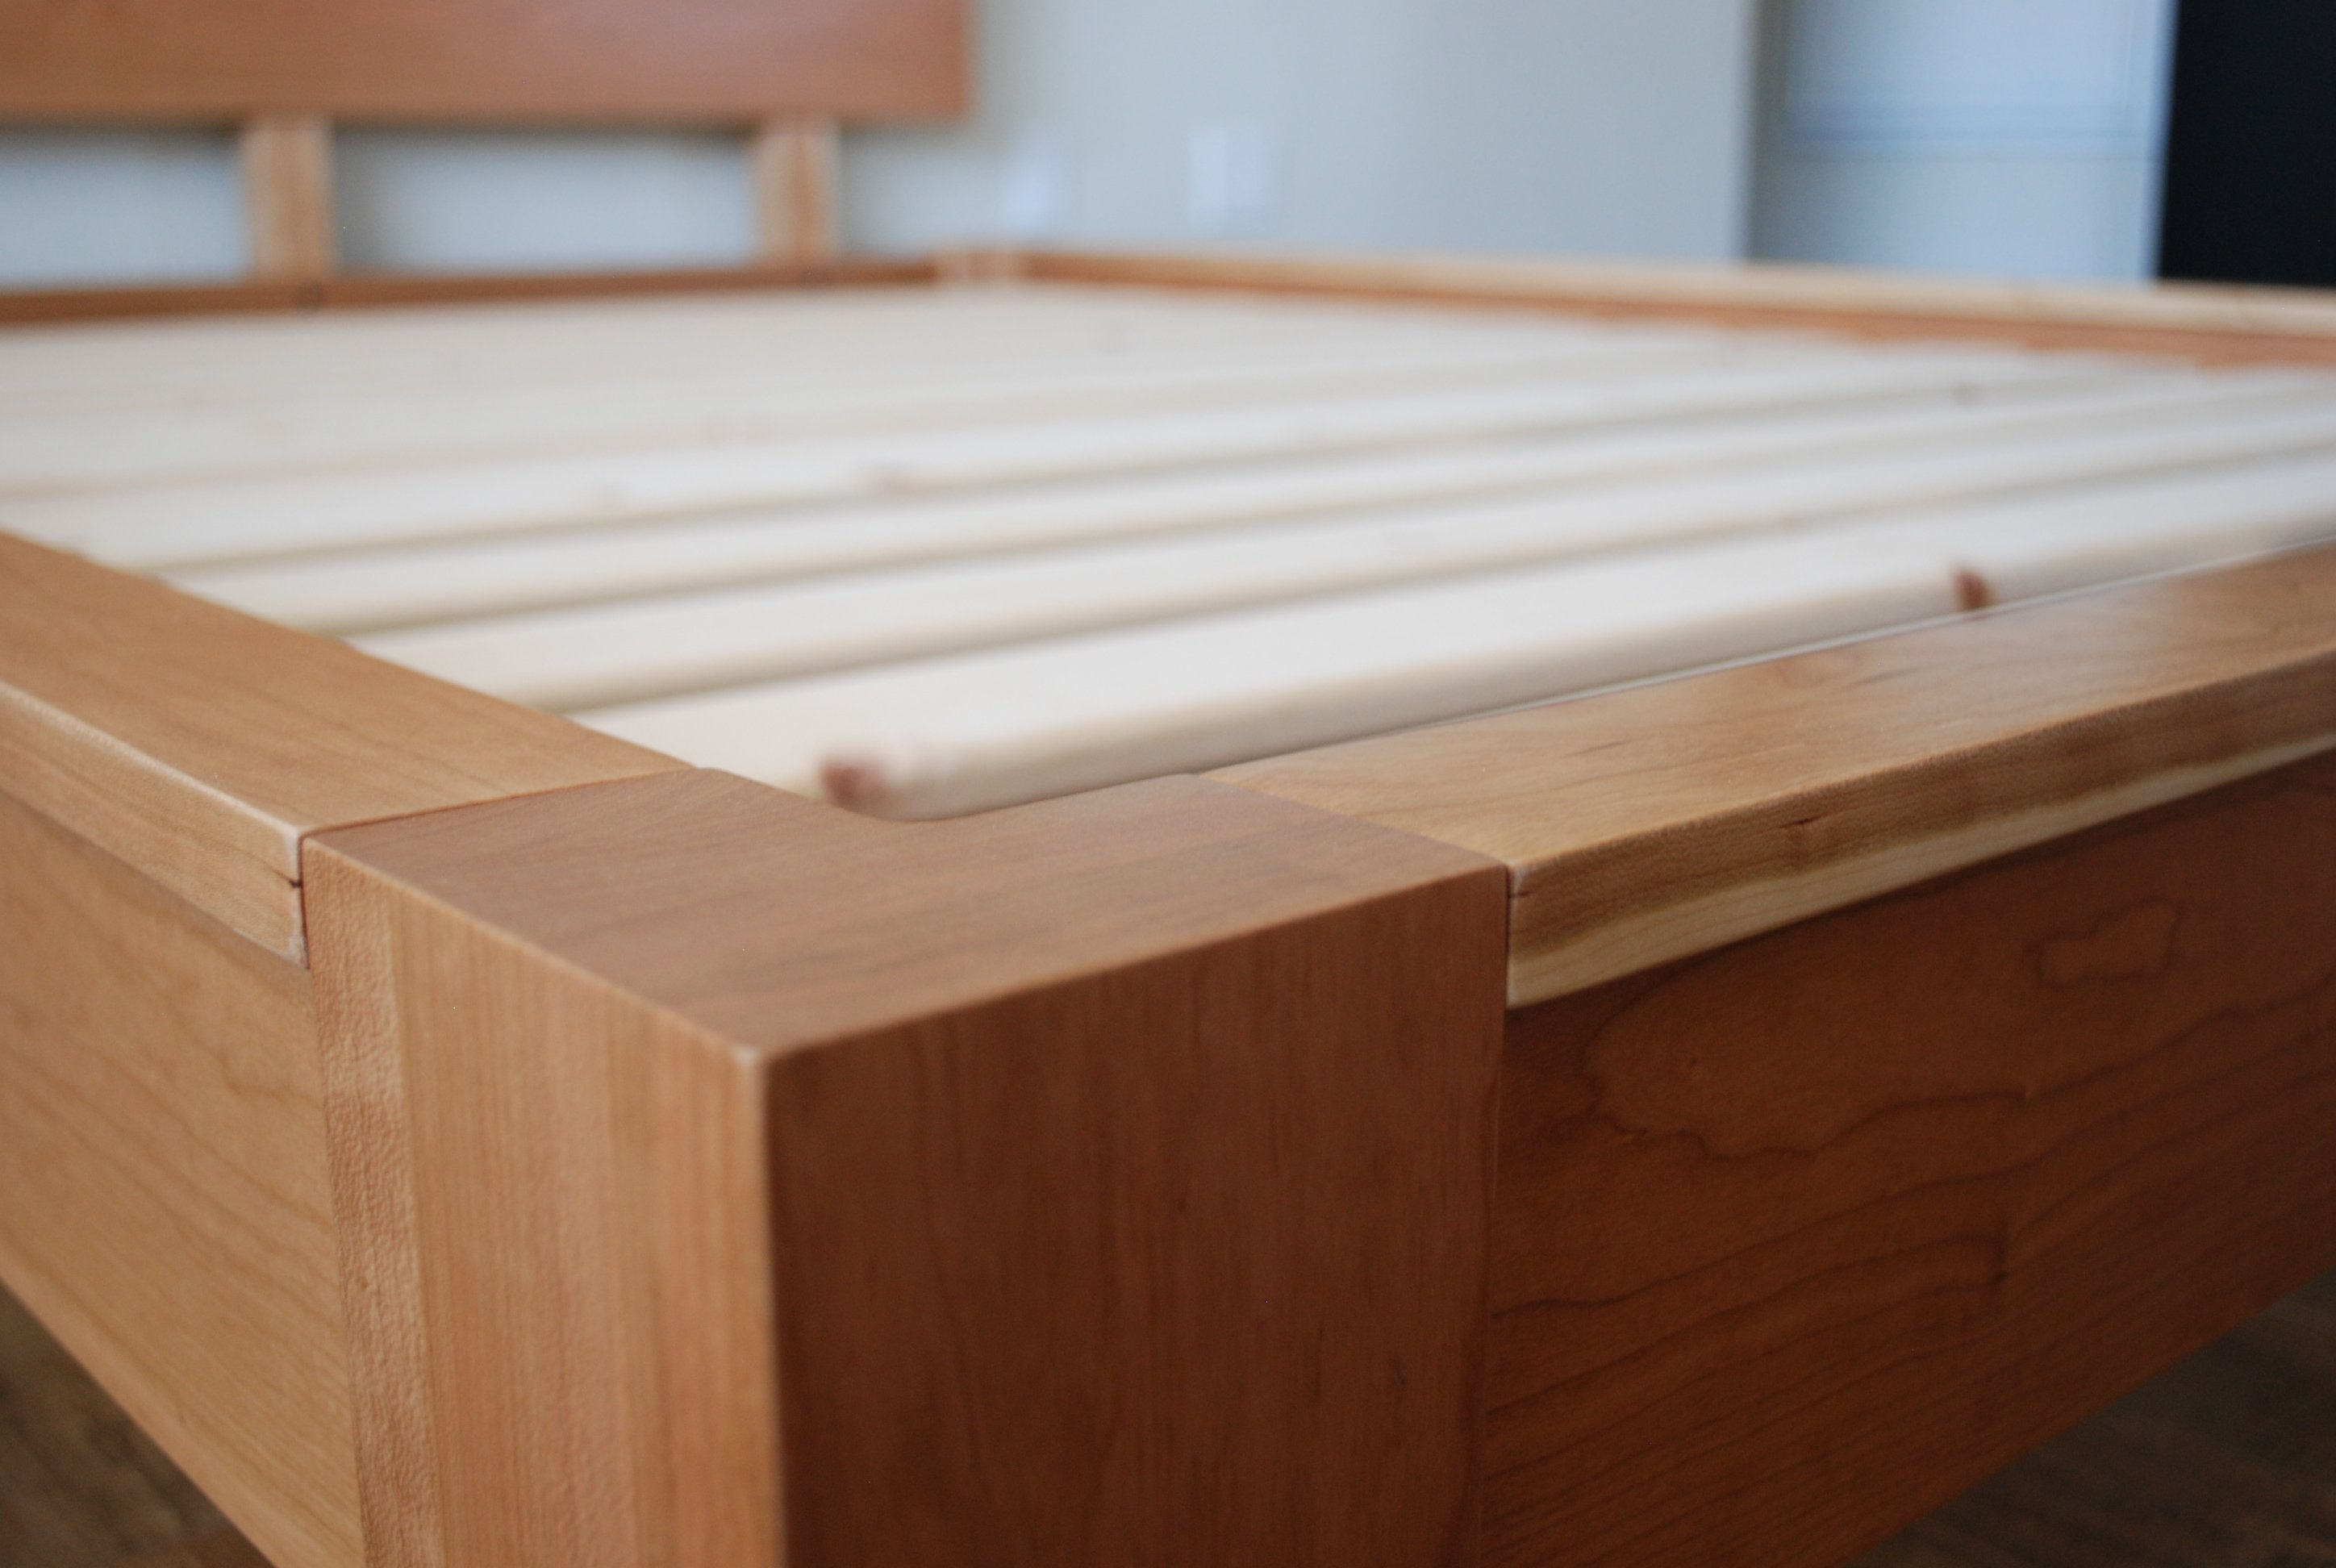 LowProfile Platform Bed with Headboard in Cherry